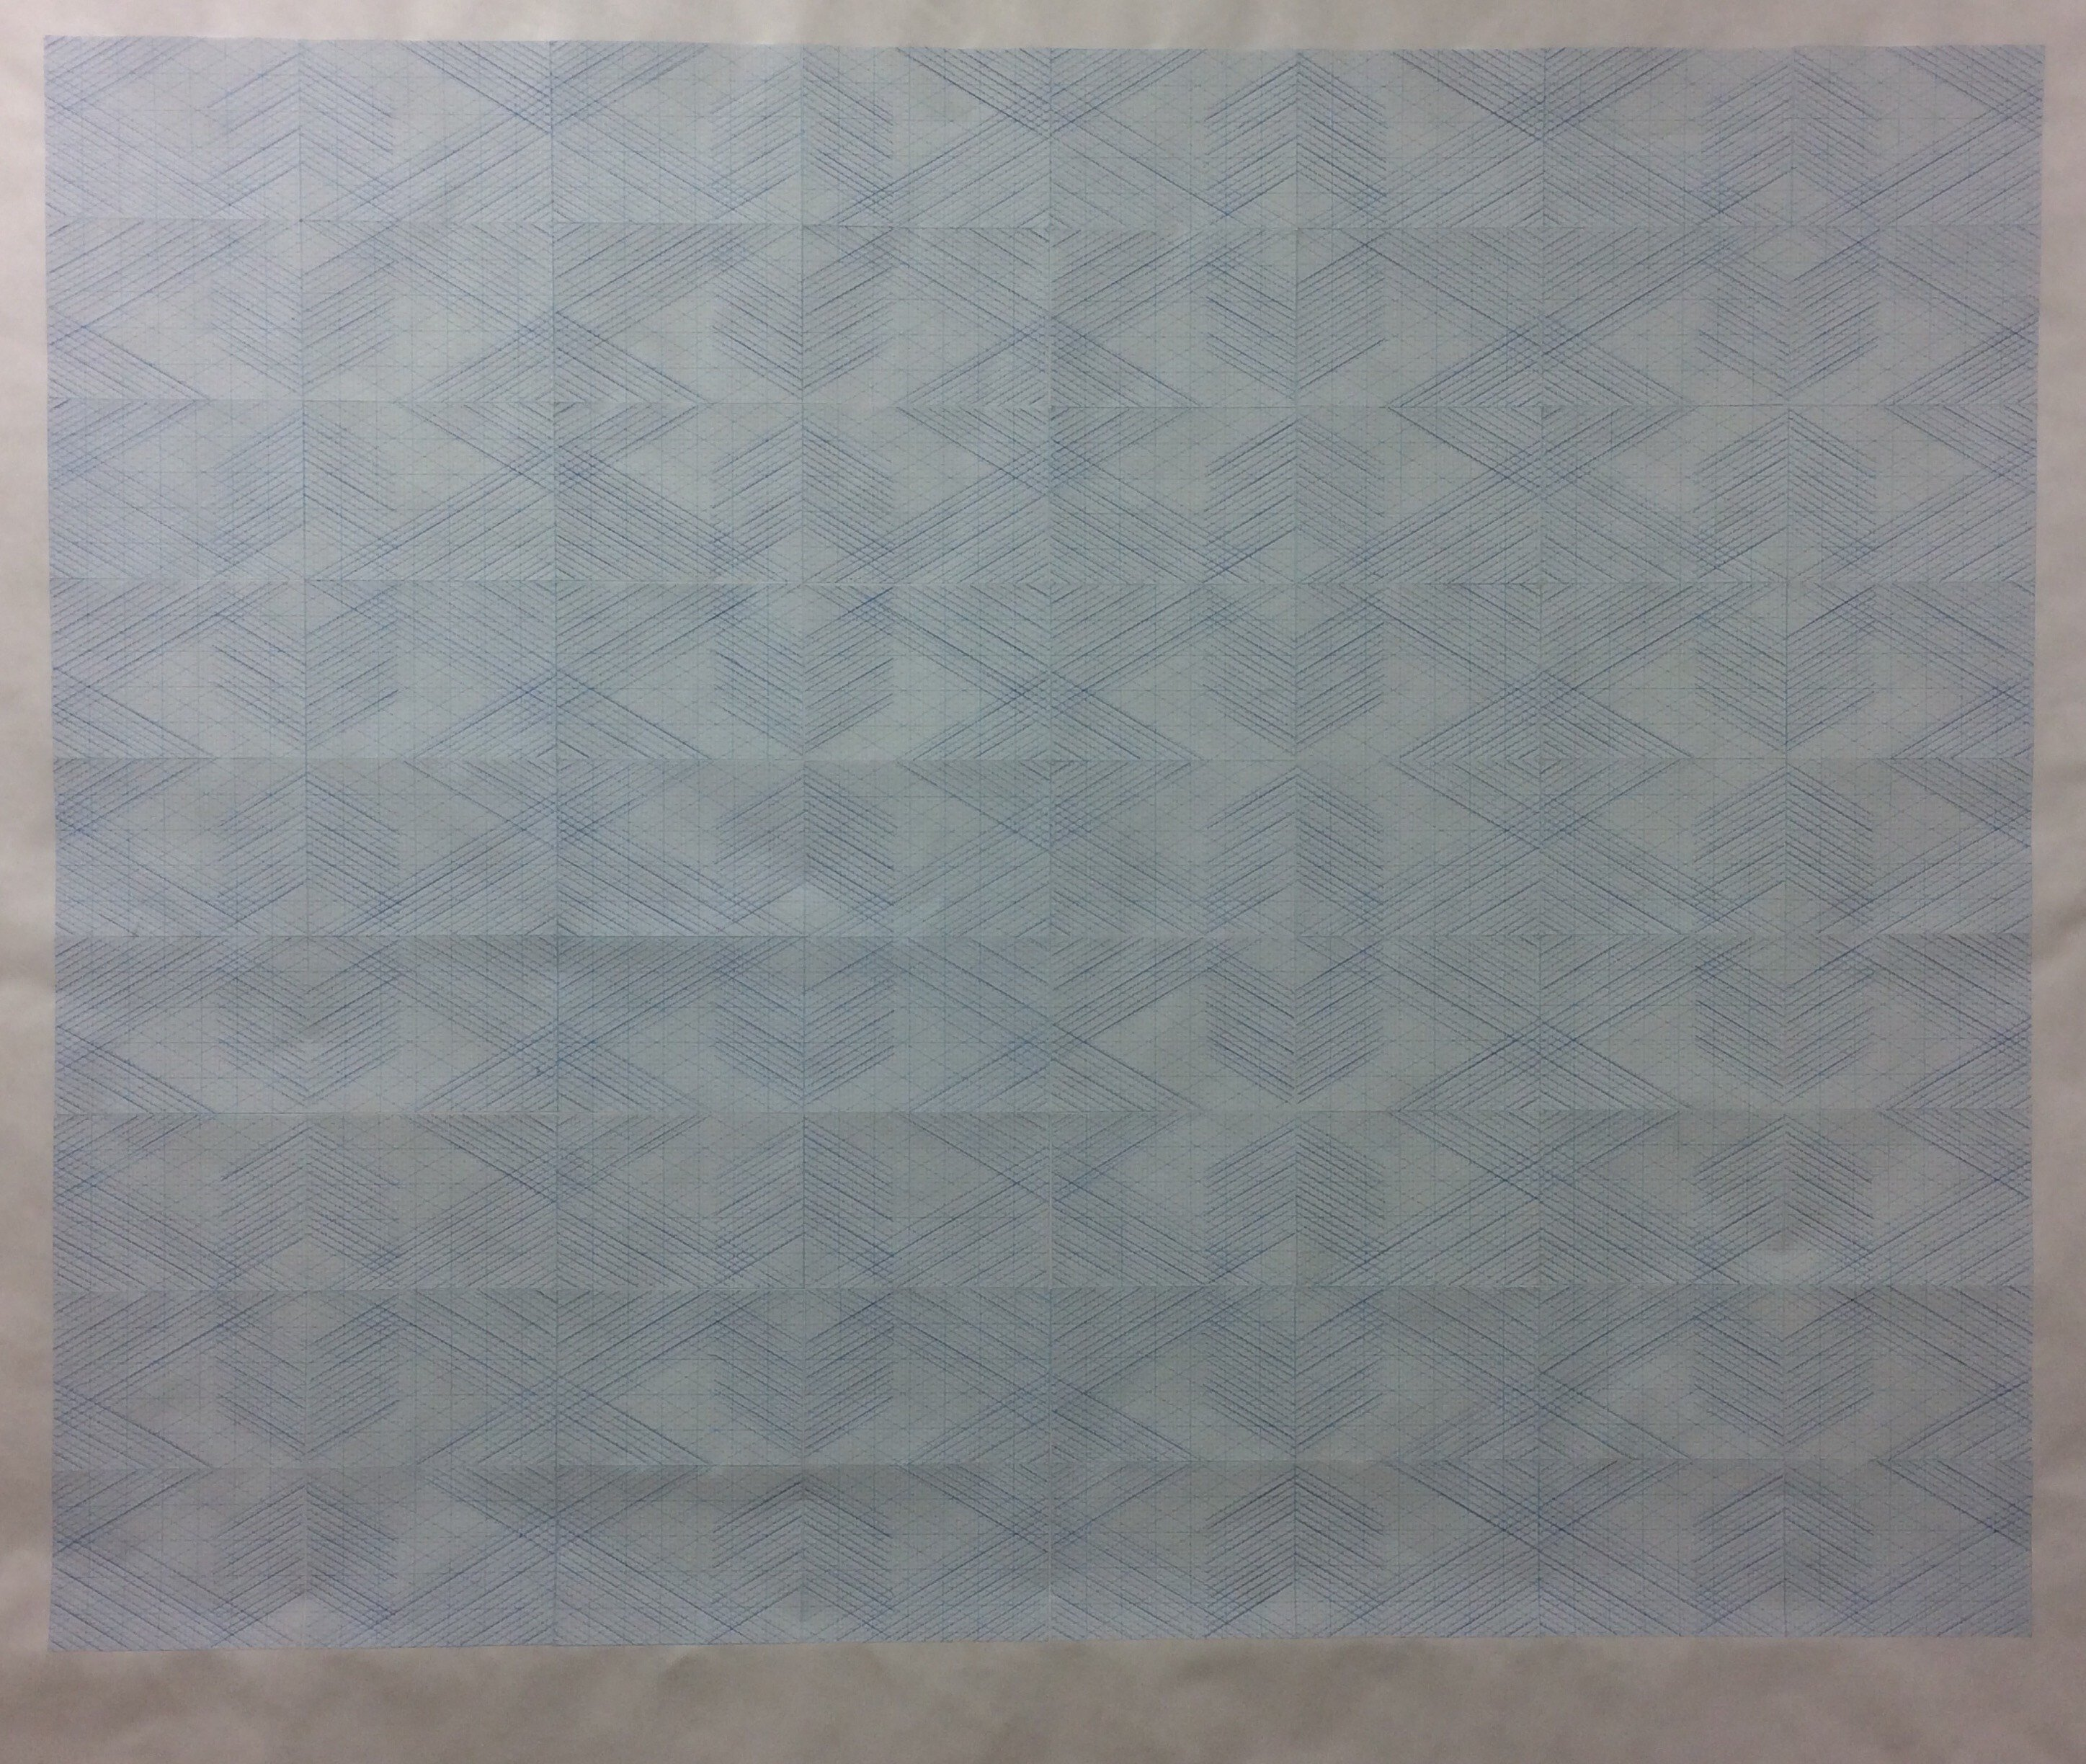 "Untitled, 2017, graph paper on tyvek and blue pencil, 50x60"", photo courtesy of Joseph Shetler"